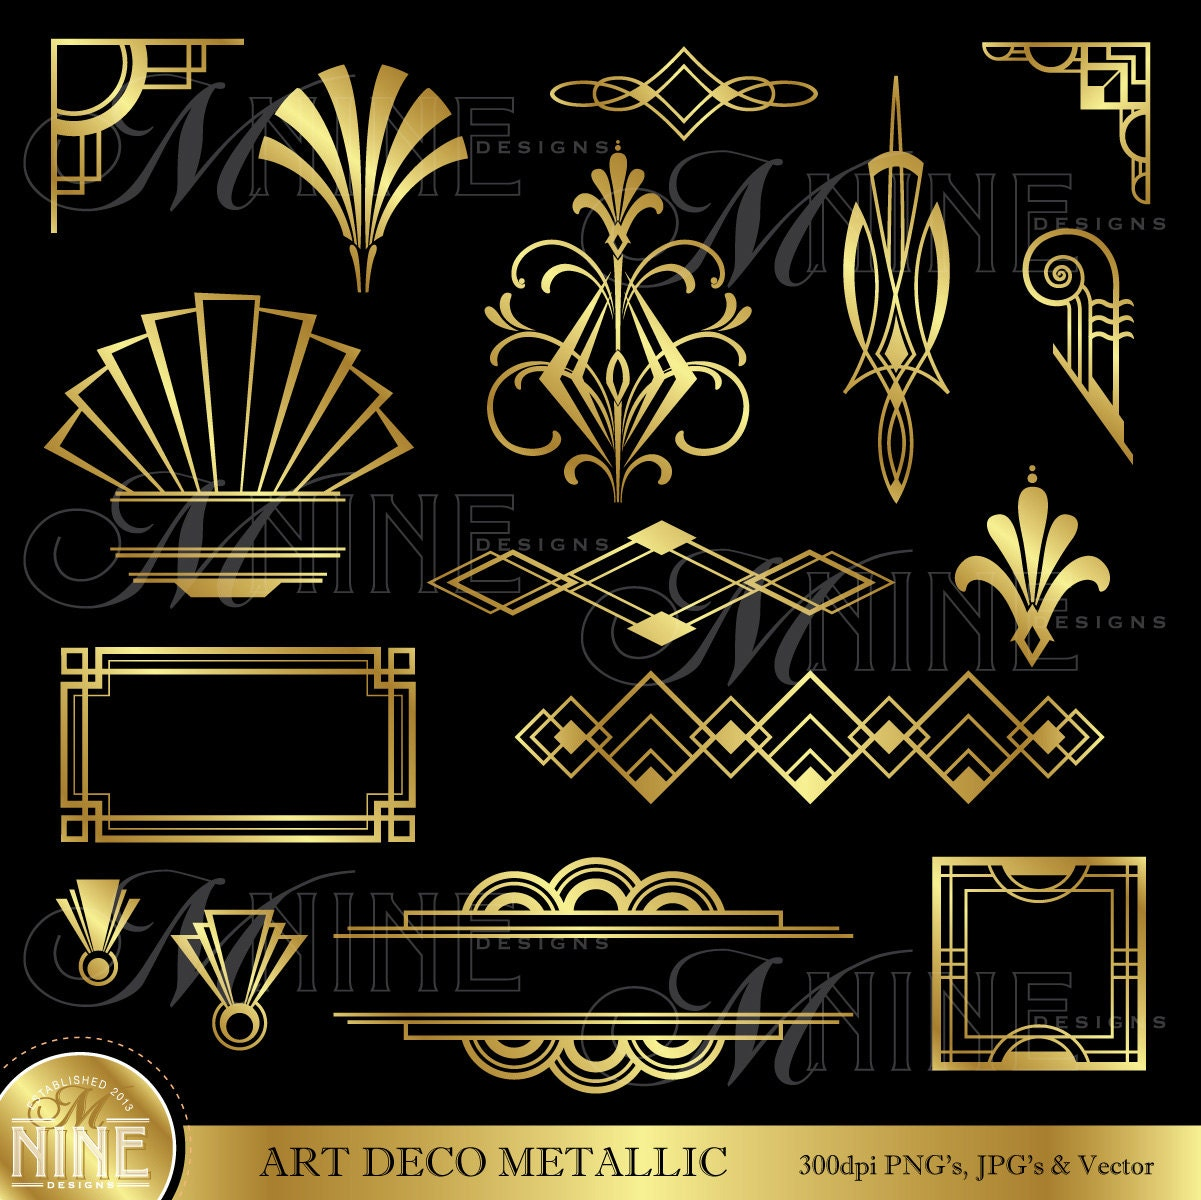 Art deco clip art gold art deco accents design for Design art deco